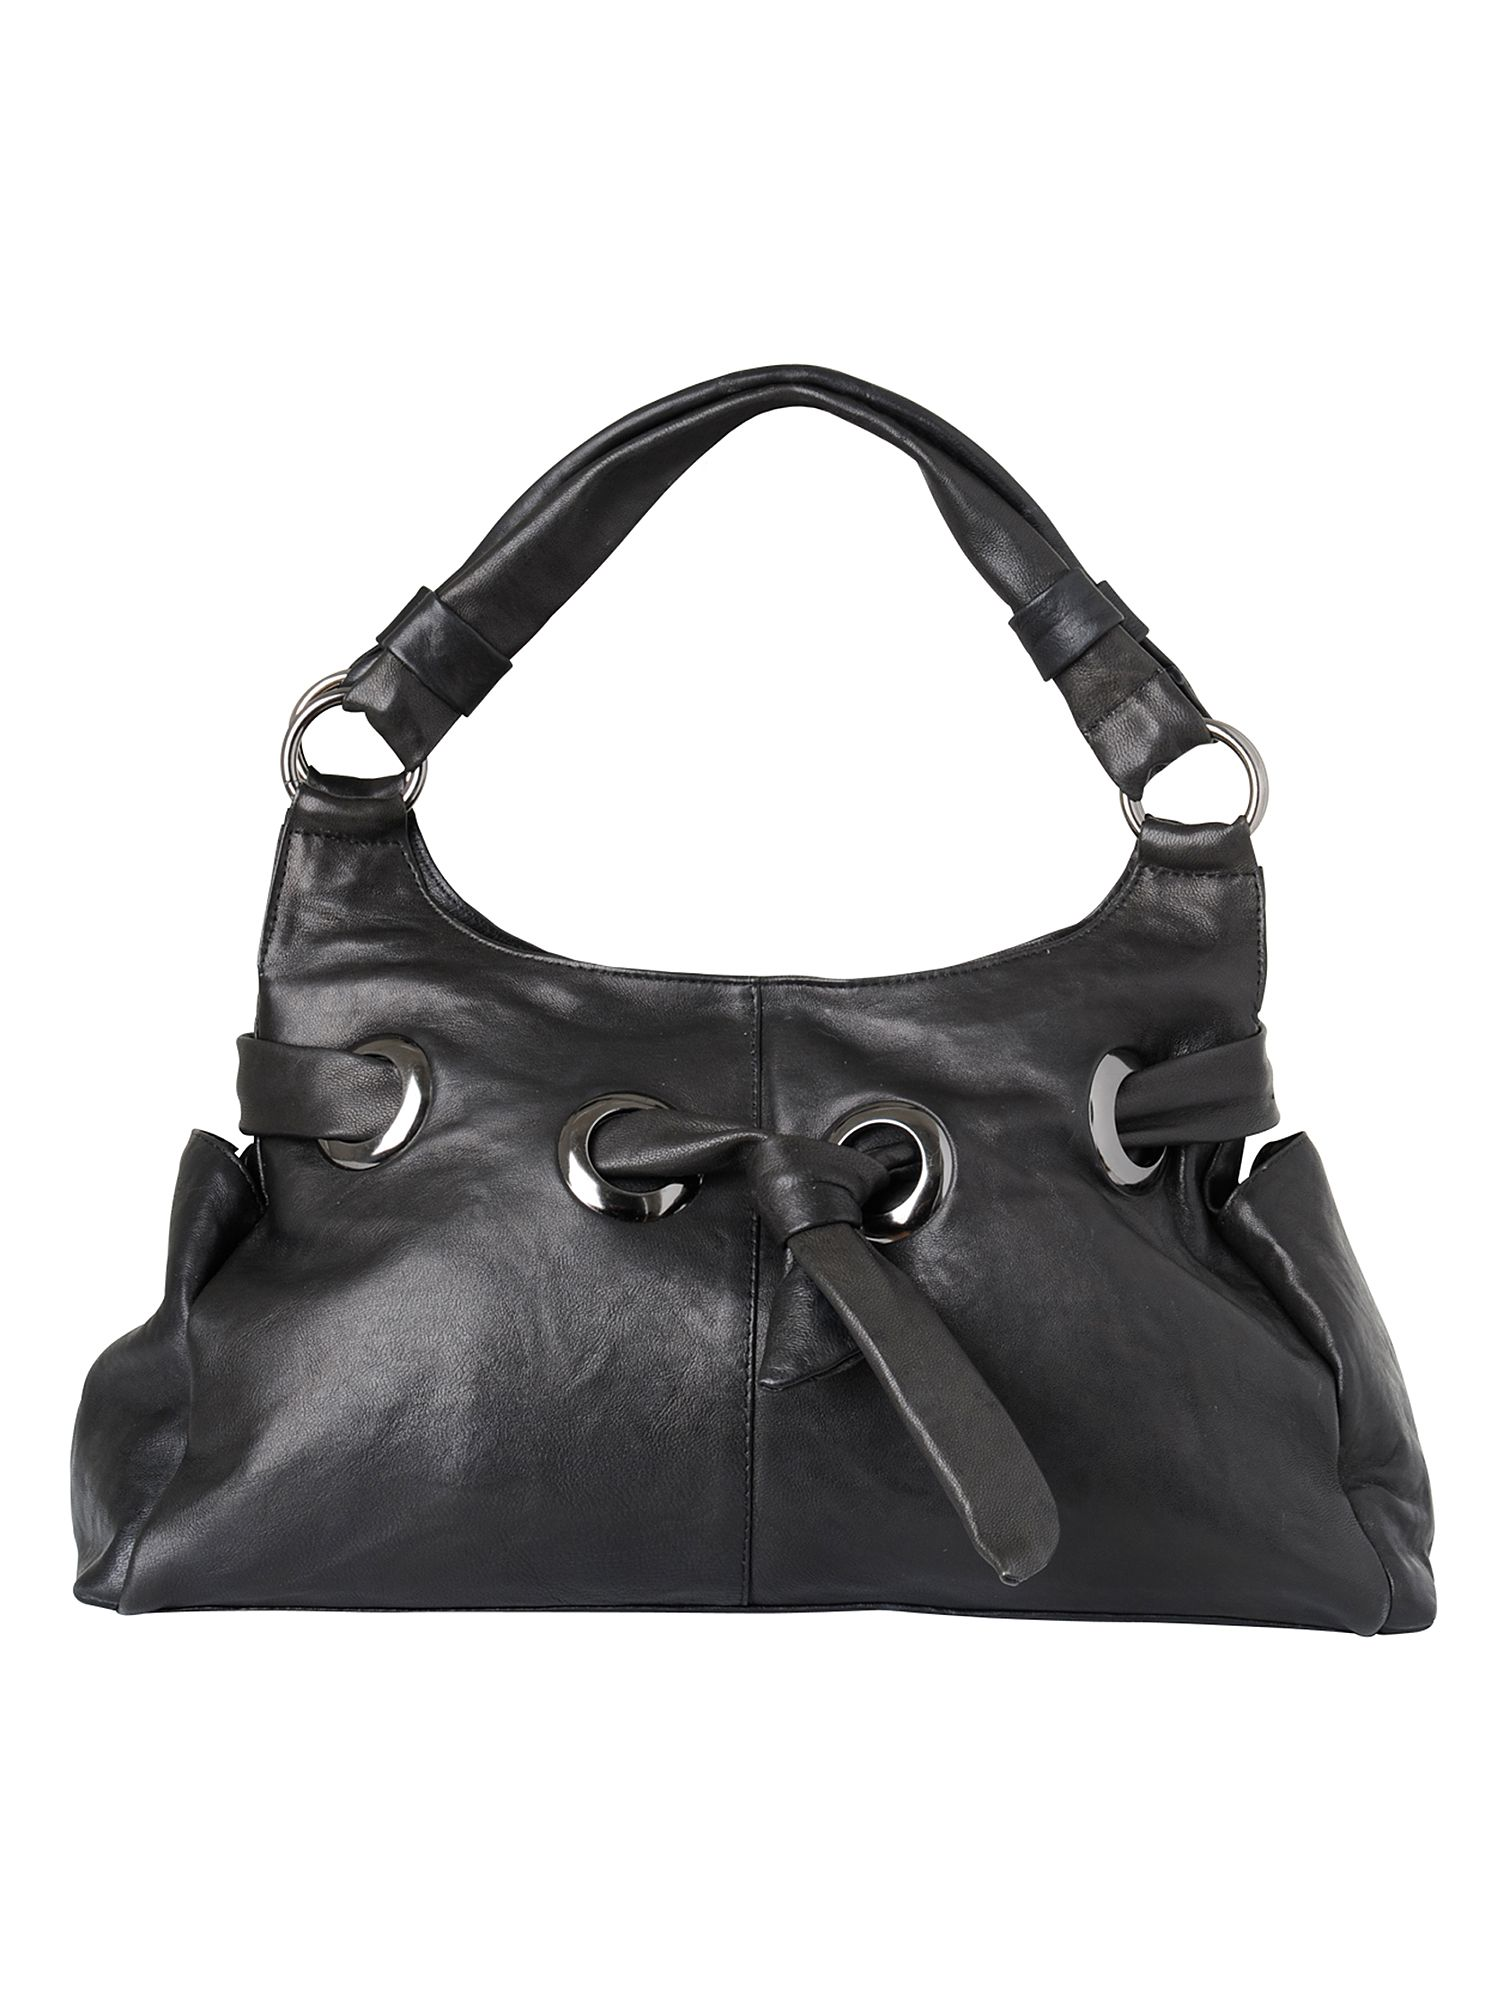 Phase Eight Soho eyelet hand bag Black product image